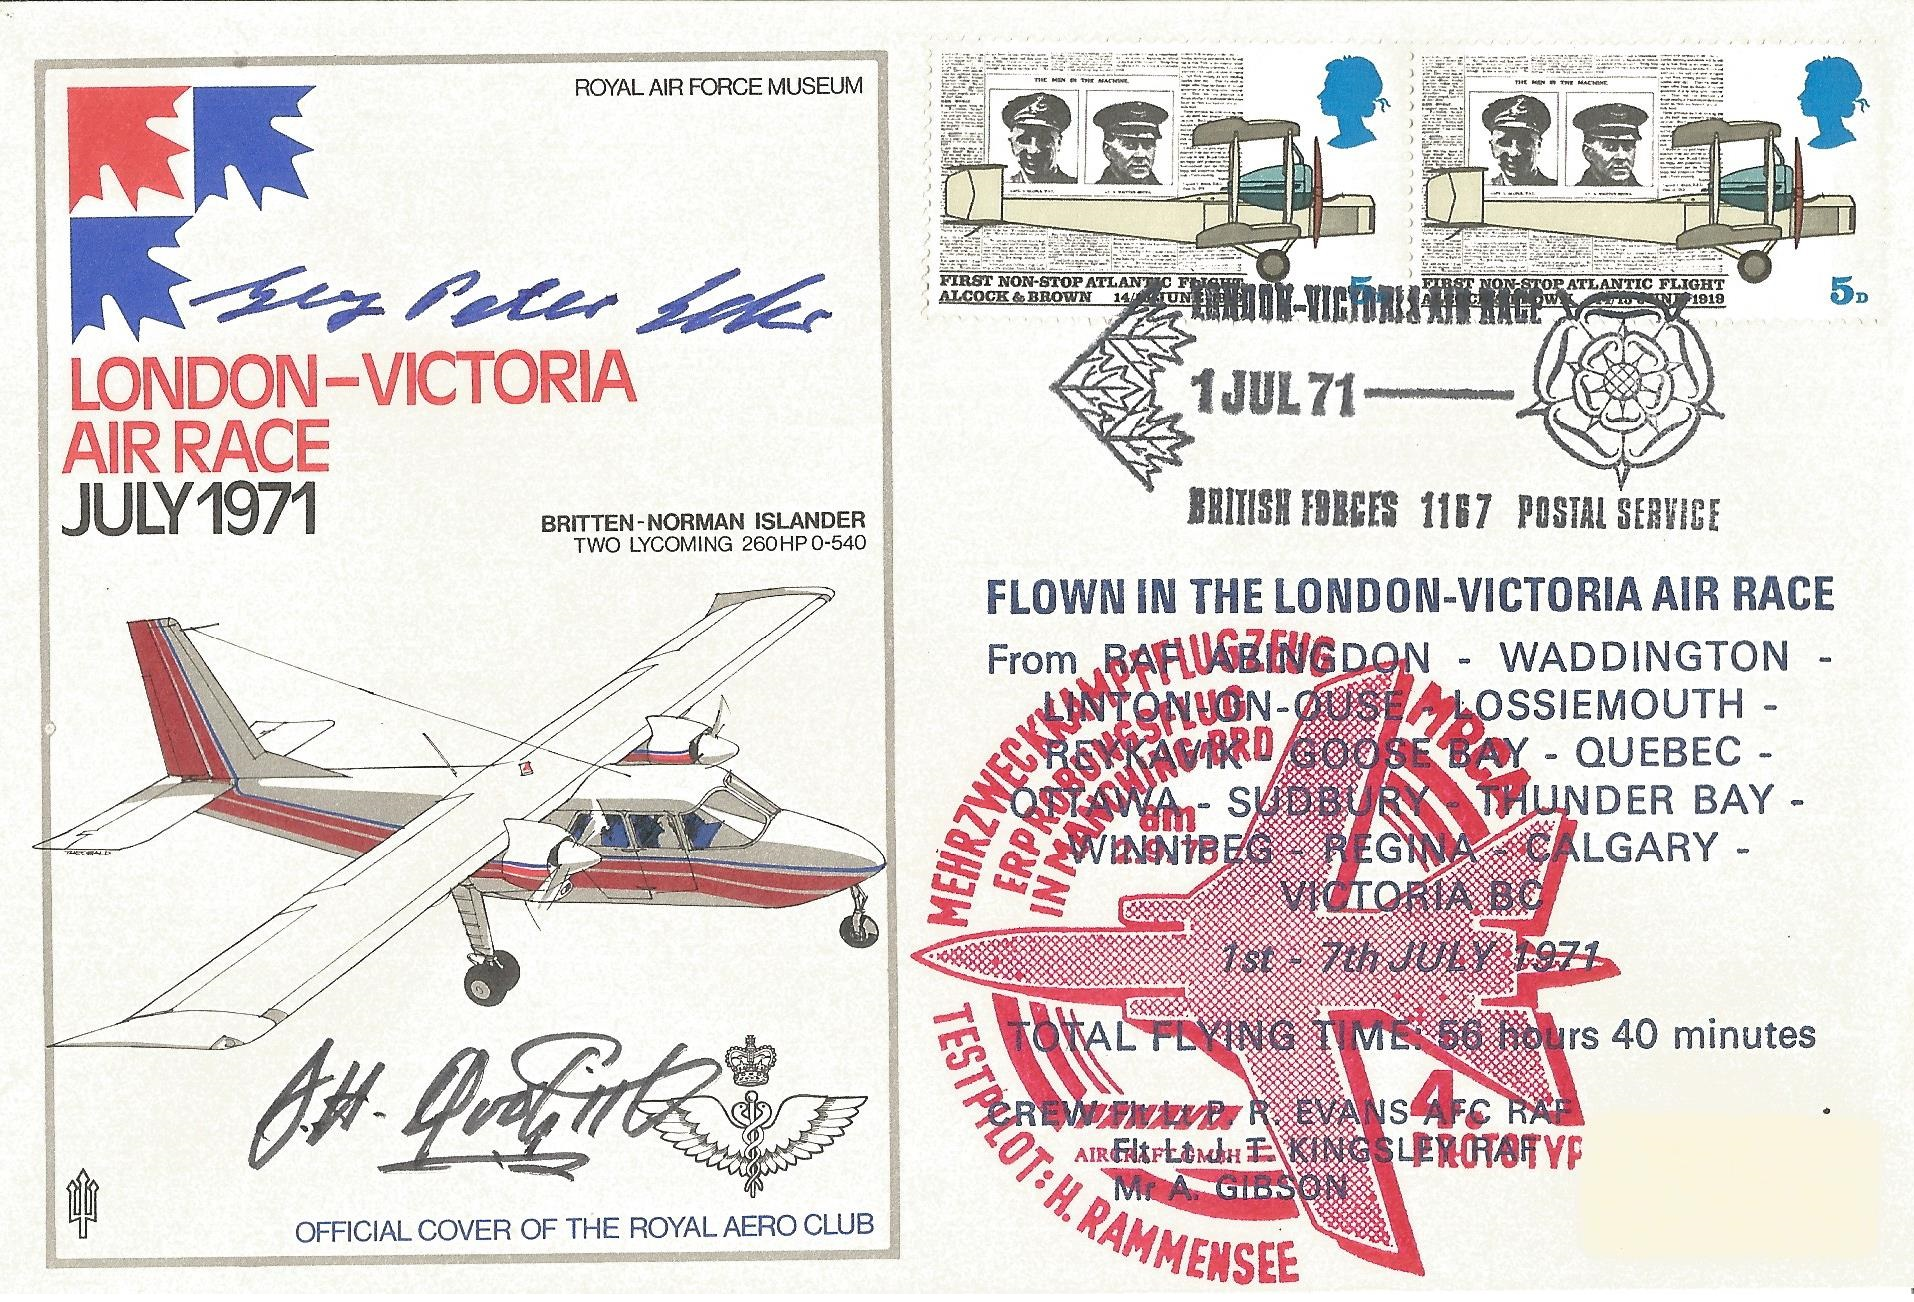 Lot 63 - Gen Jimmy Doolittle and Georg Peter Eder signed 1971 London Victoria Air Race cover. Good